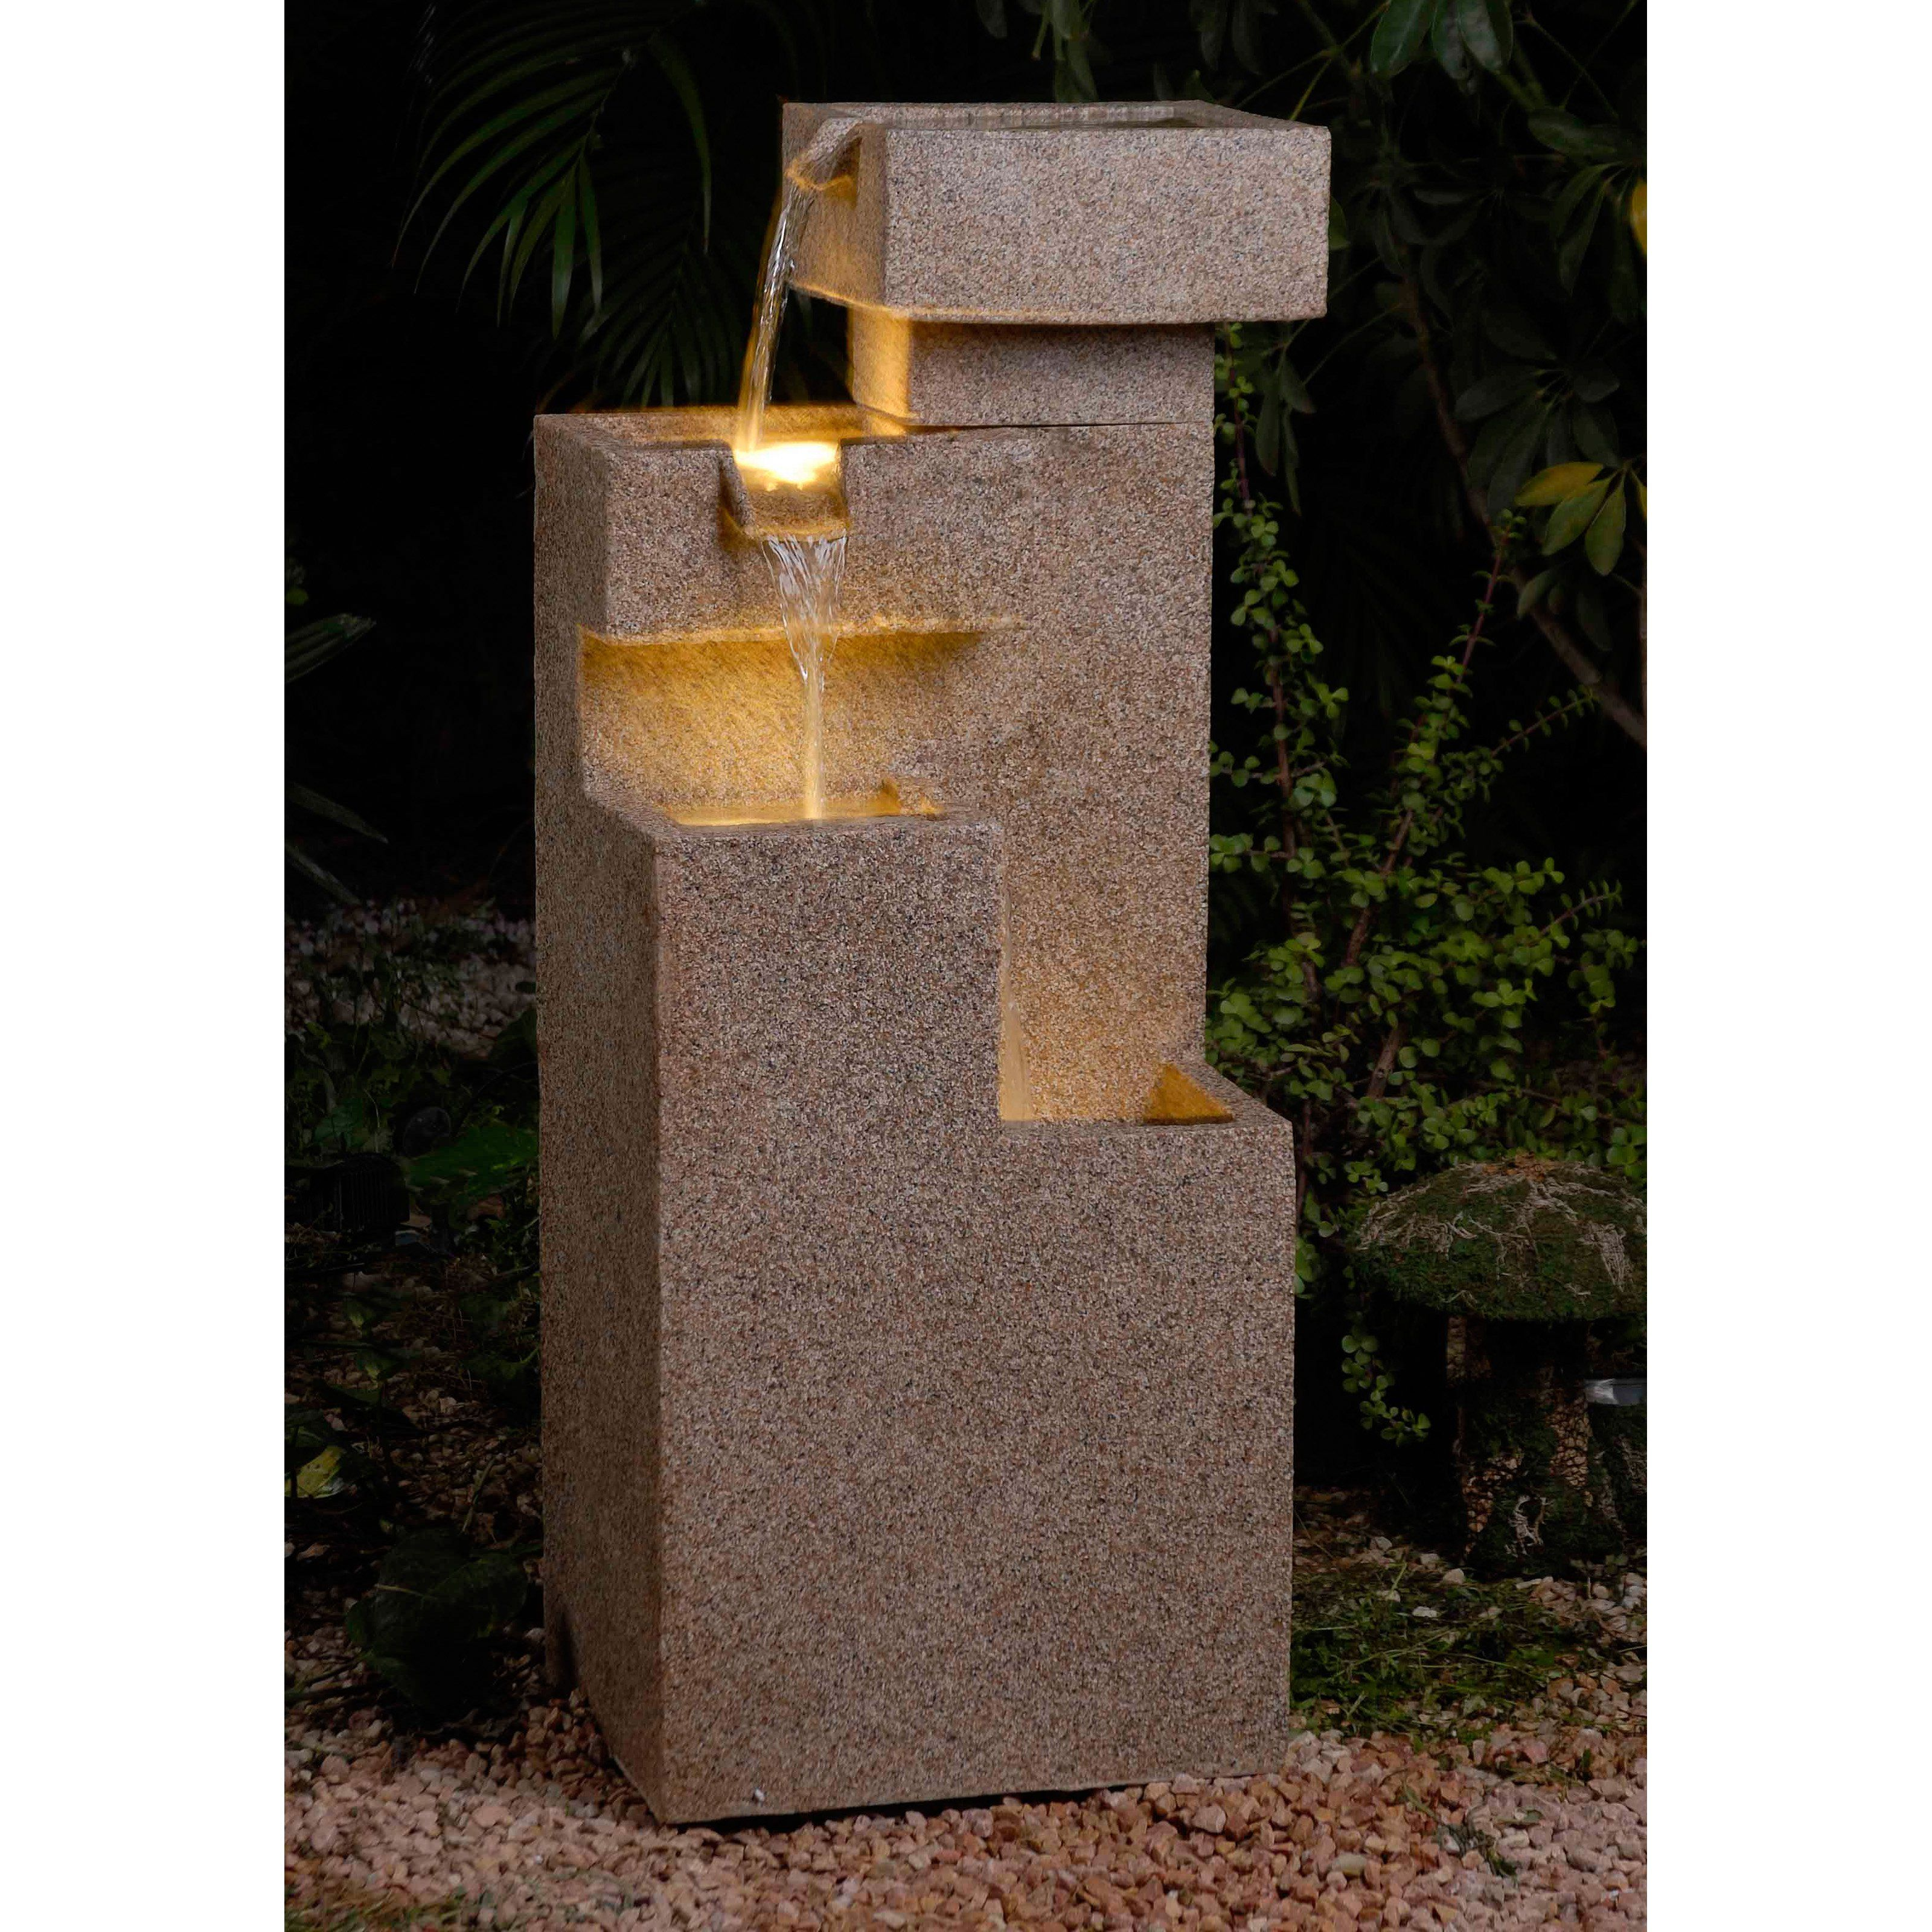 Jeco Sand Stone Cascade Tires Outdoor / Indoor Lighted Outdoor Fountain